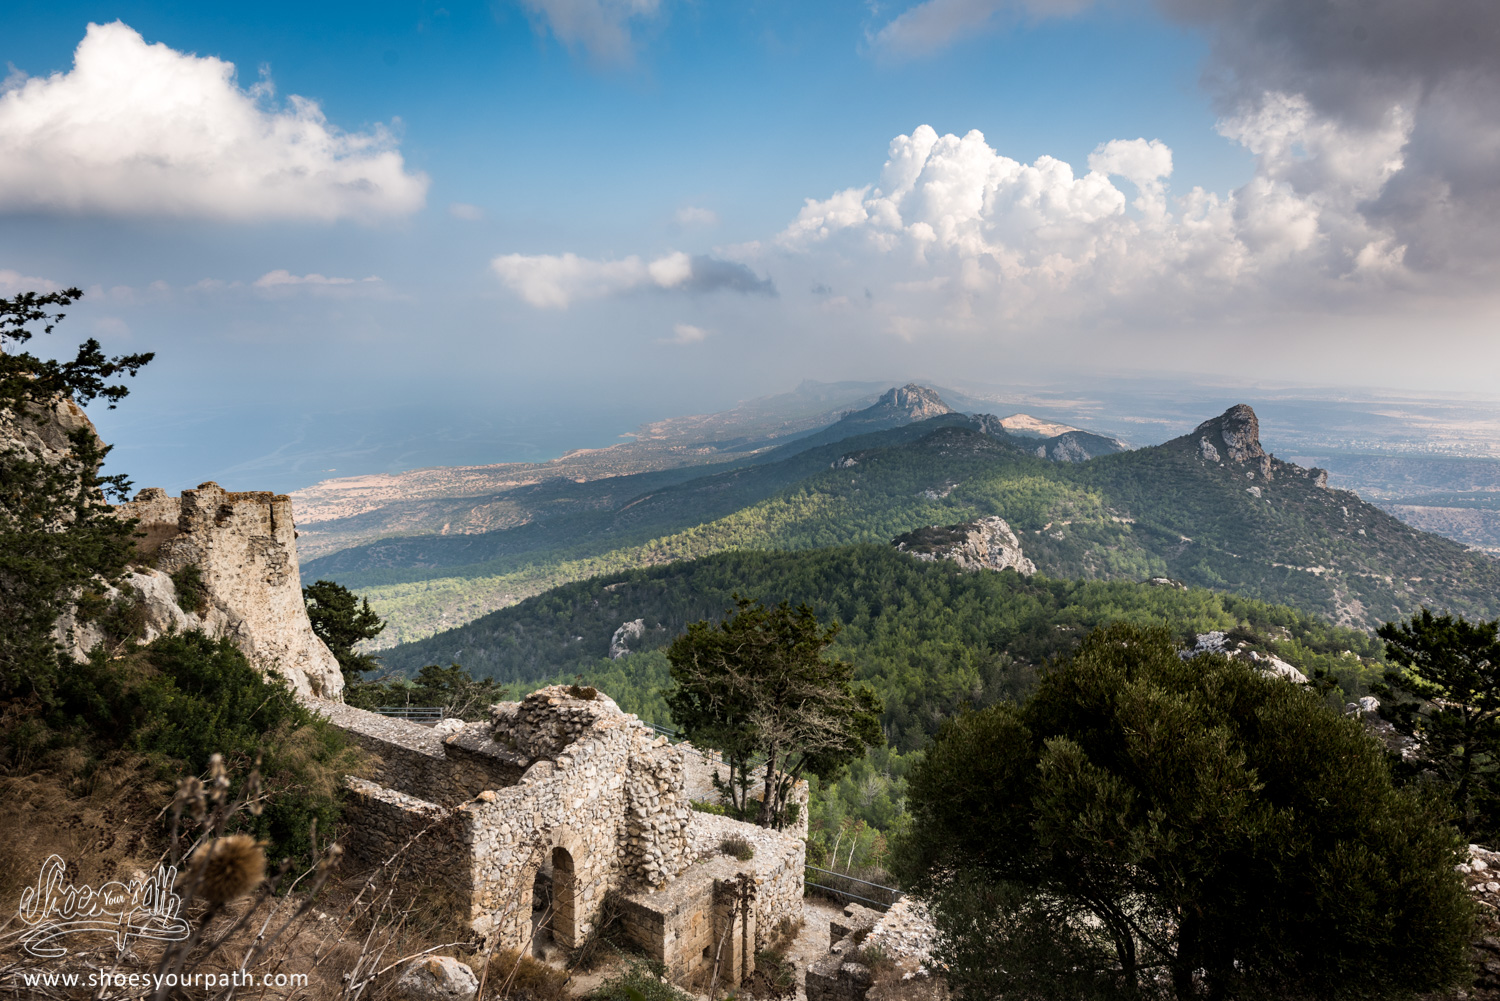 View over the Kyrenia mountains and the Karpas peninsula from Kantara castle